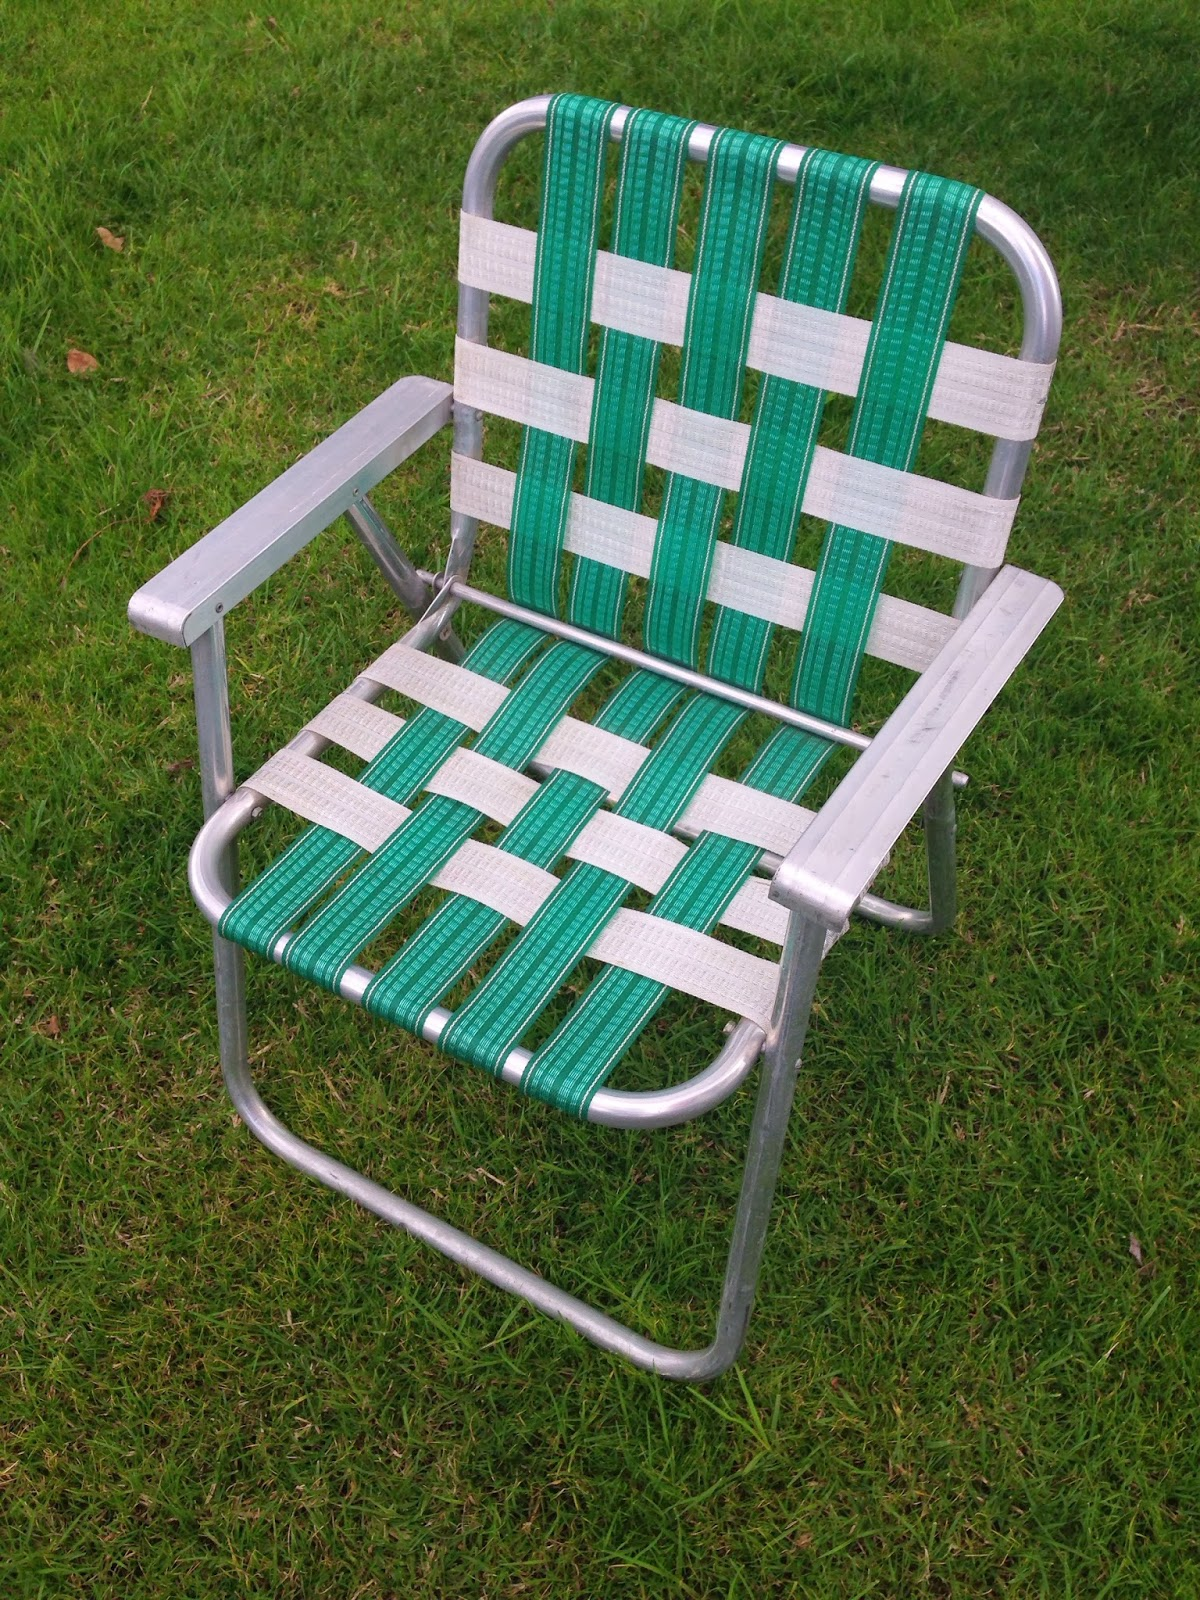 Seatbeltblog HOW TO RESTORE A 70S LAWN CHAIR KINDA